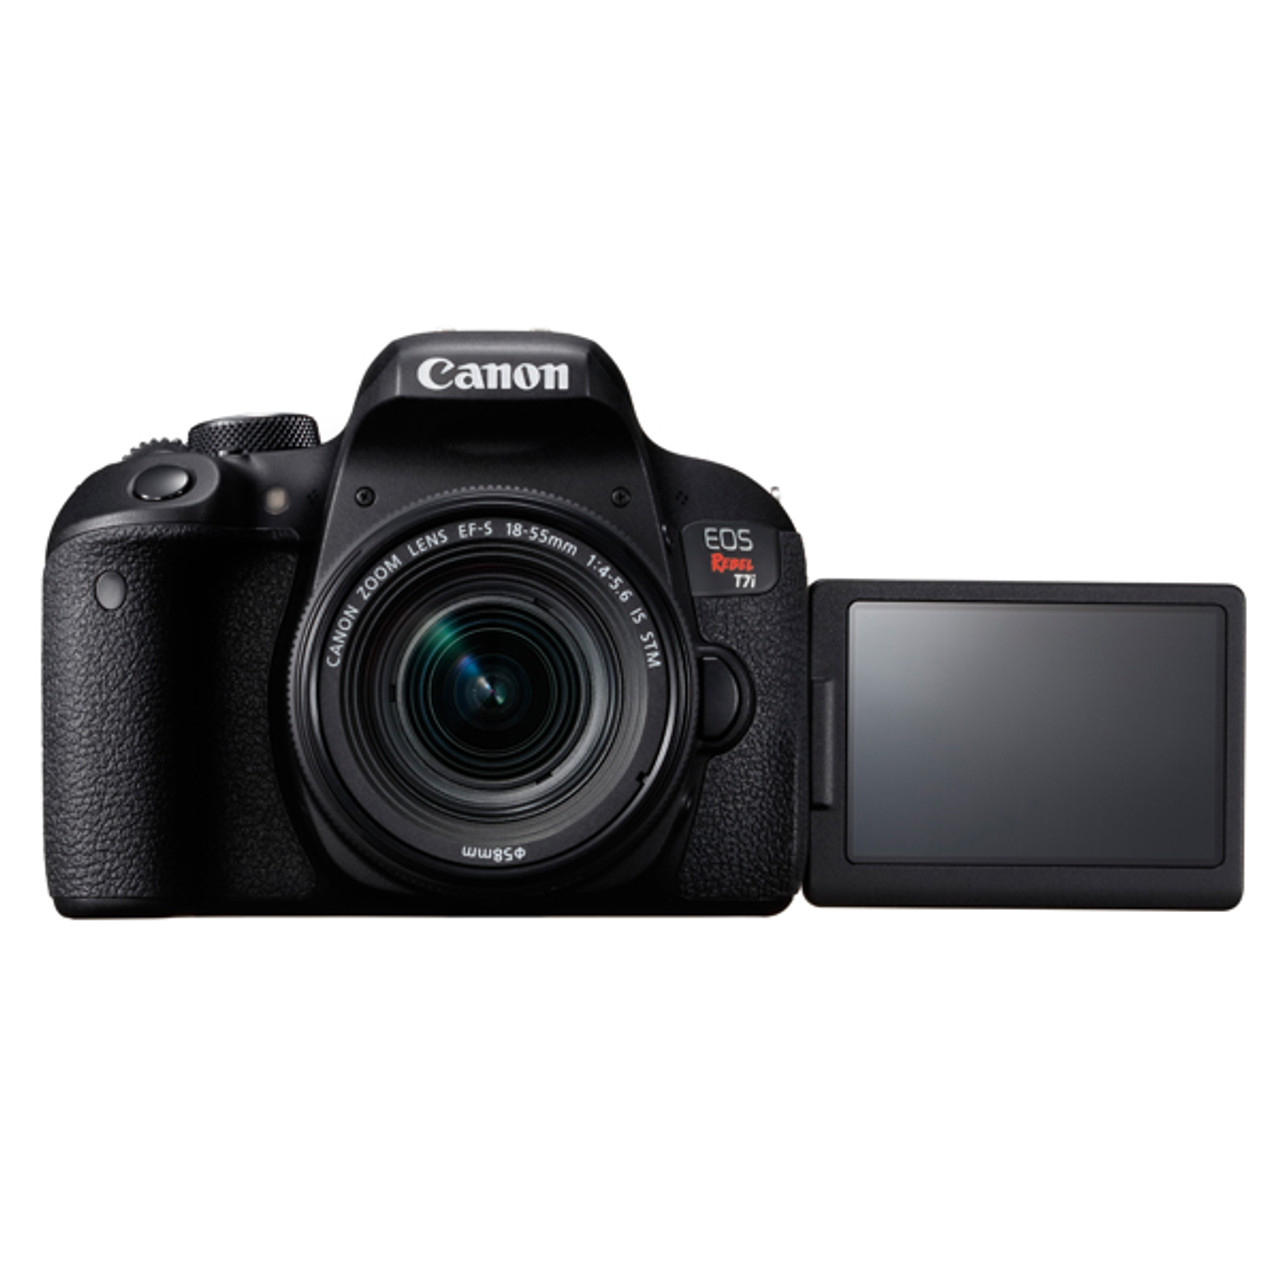 Canon EOS Rebel T7i 18-55mm IS STM Kit (Open Box)